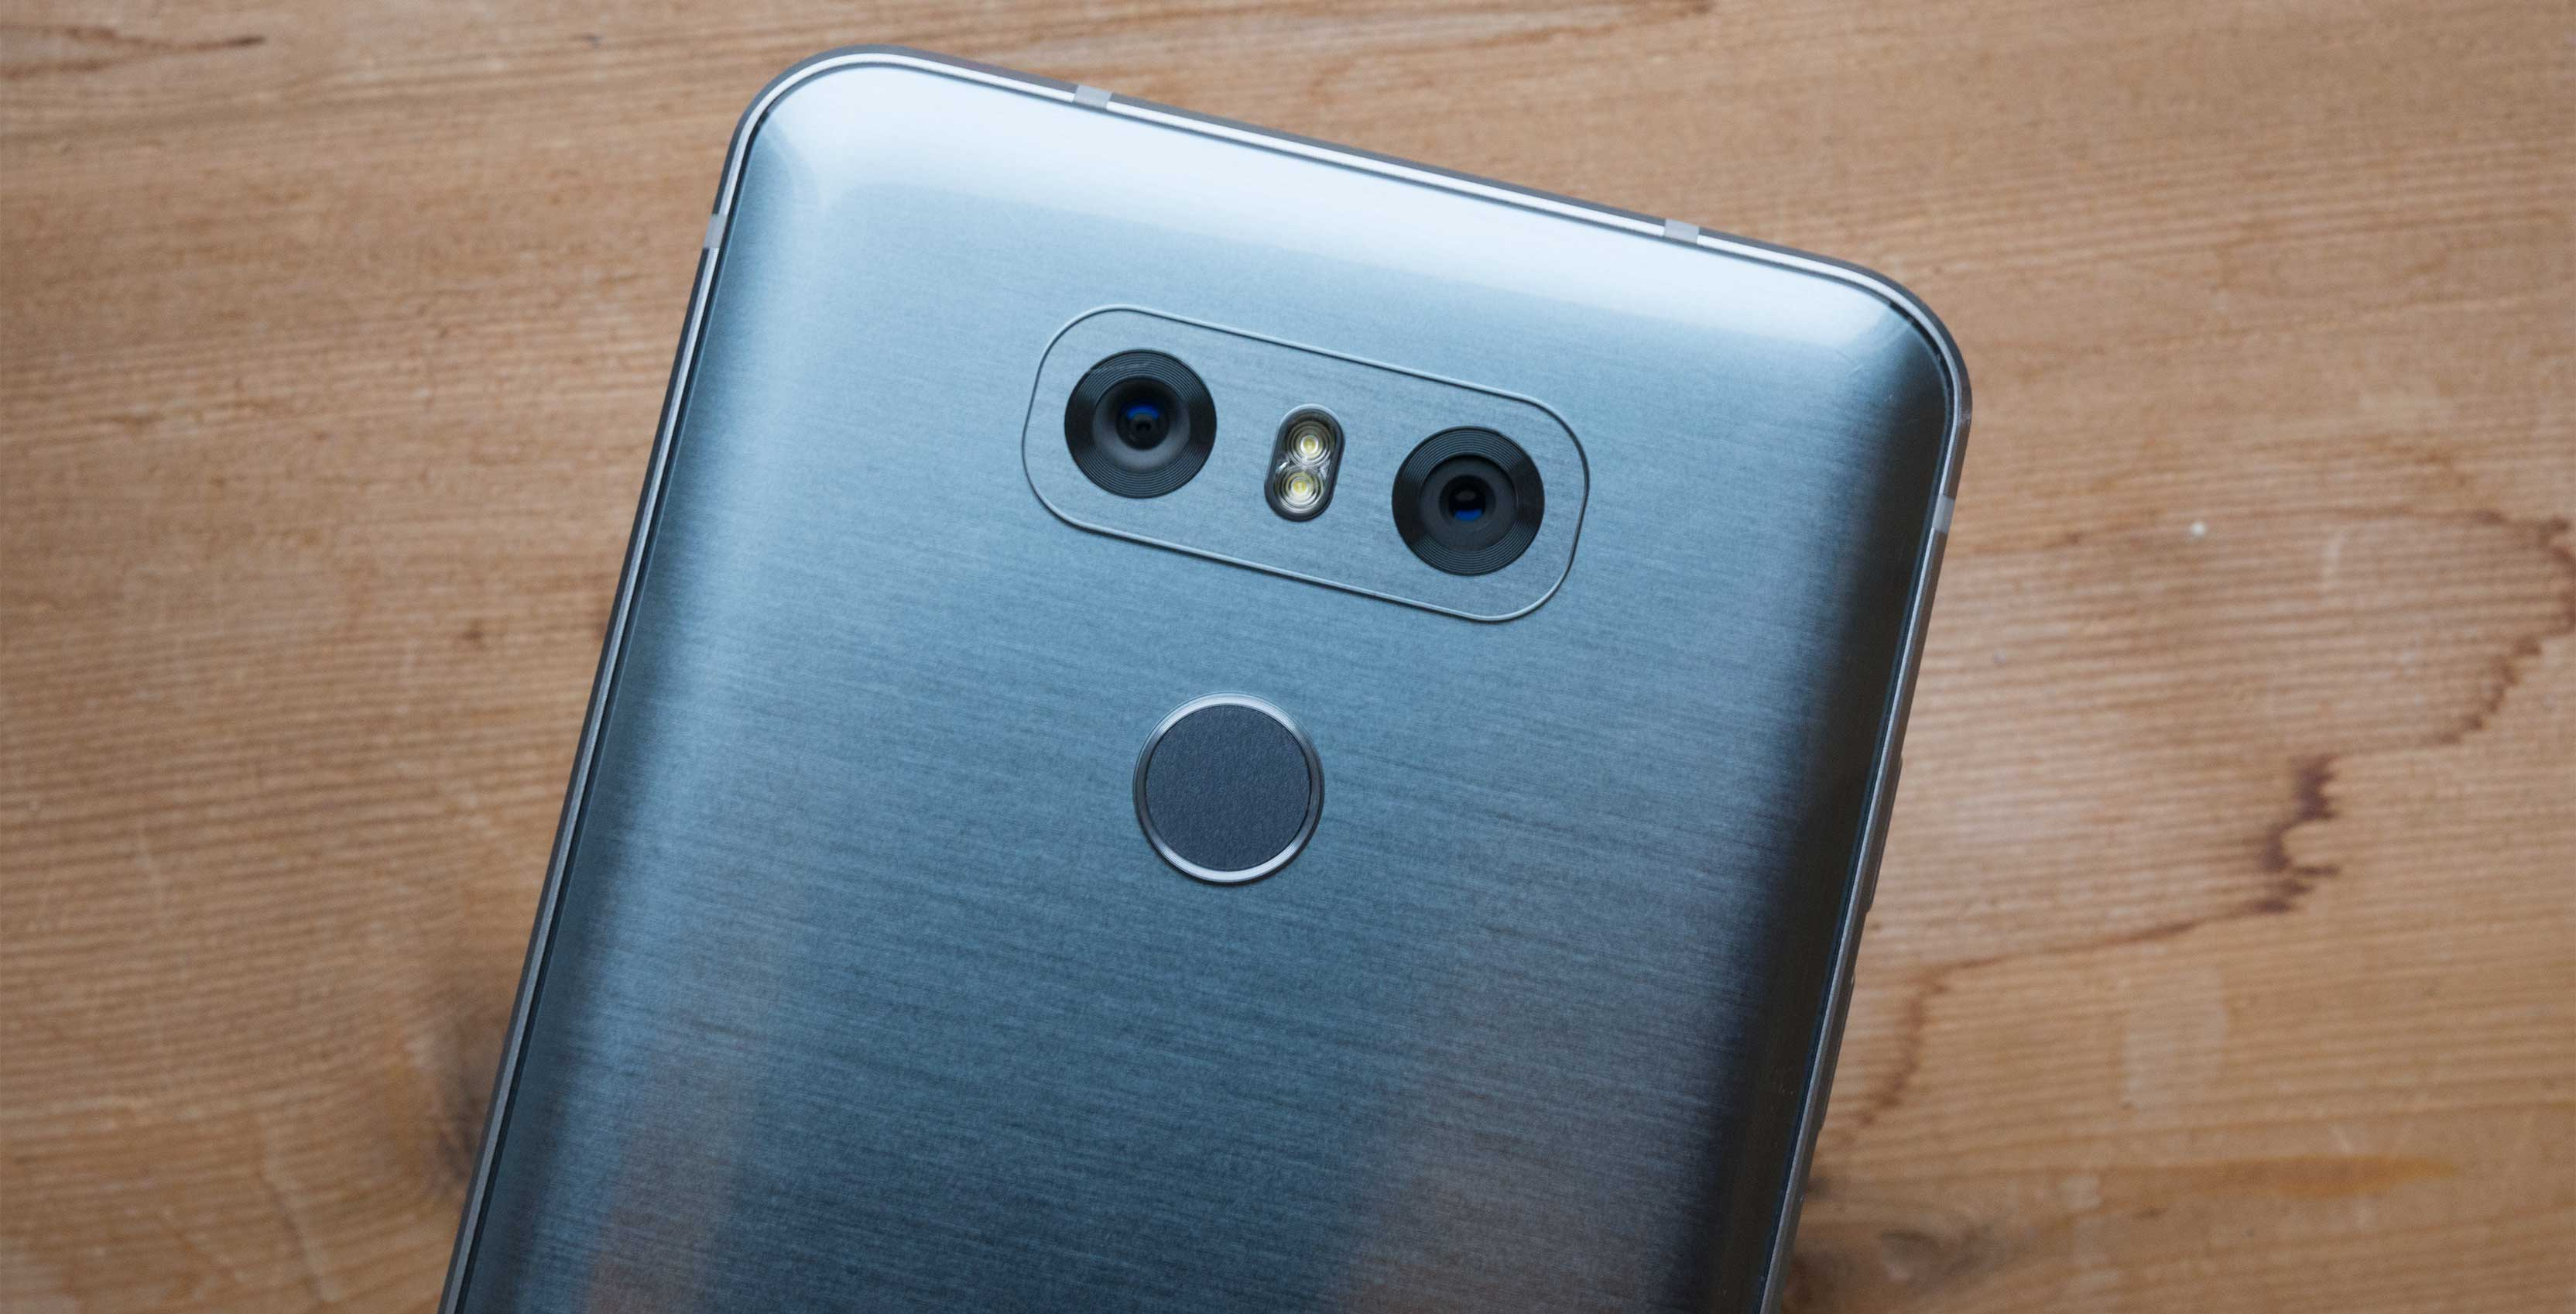 LG G6 rear facing cameras